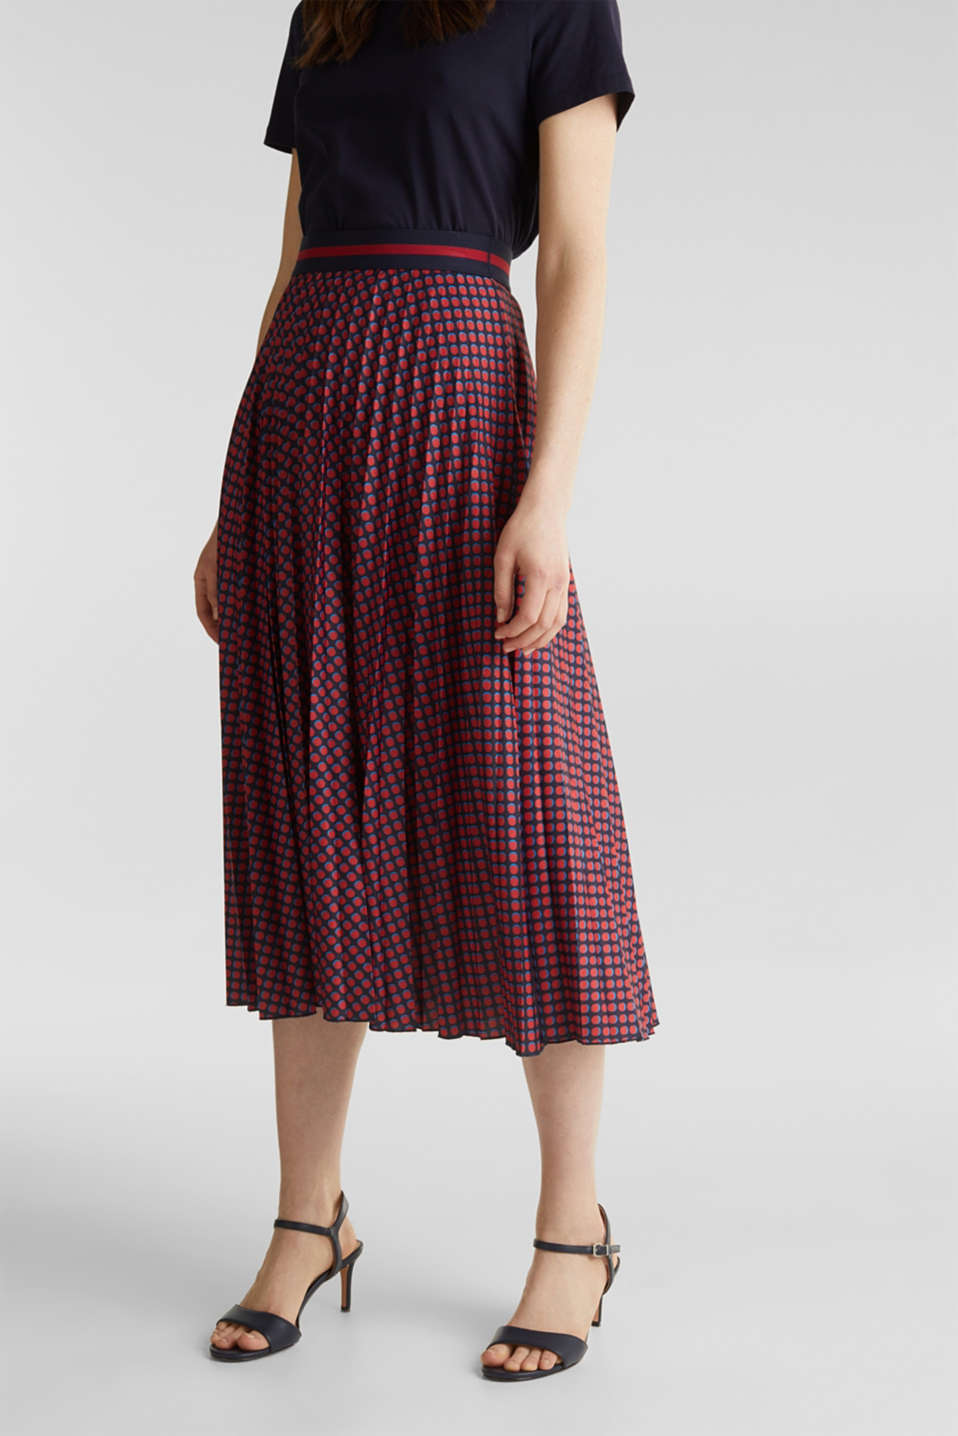 Esprit - Stretch jersey skirt with accordion pleats